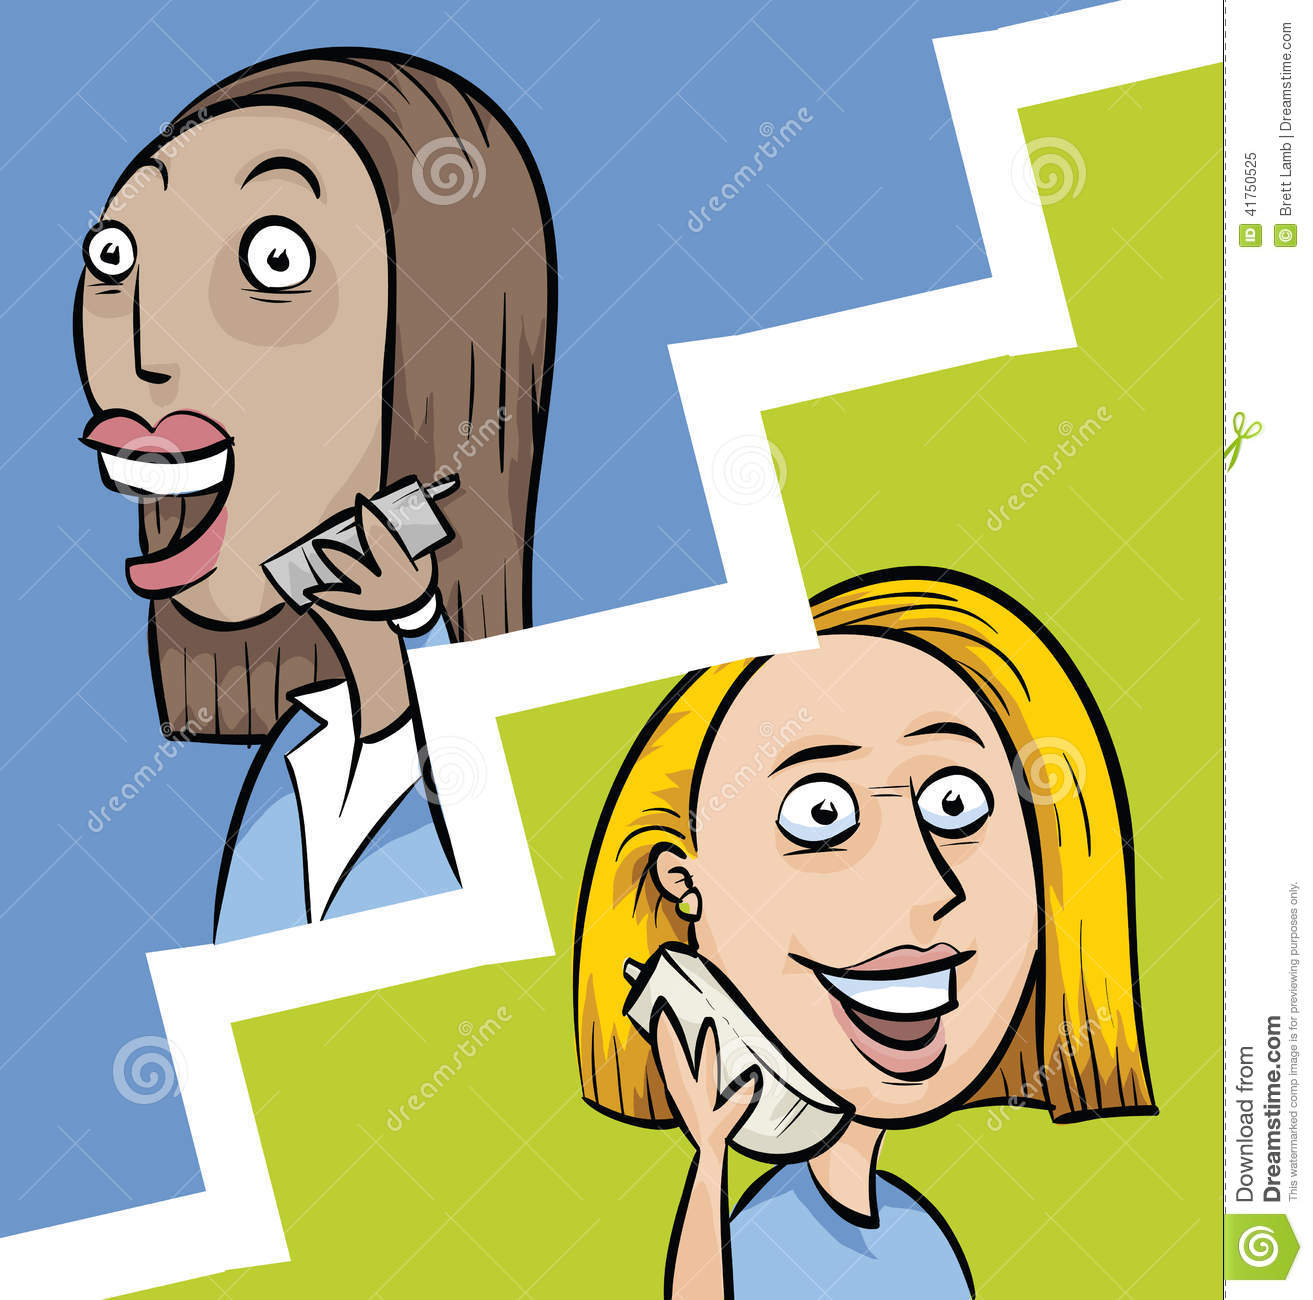 Telephone Conversation Between Two People Clipart.